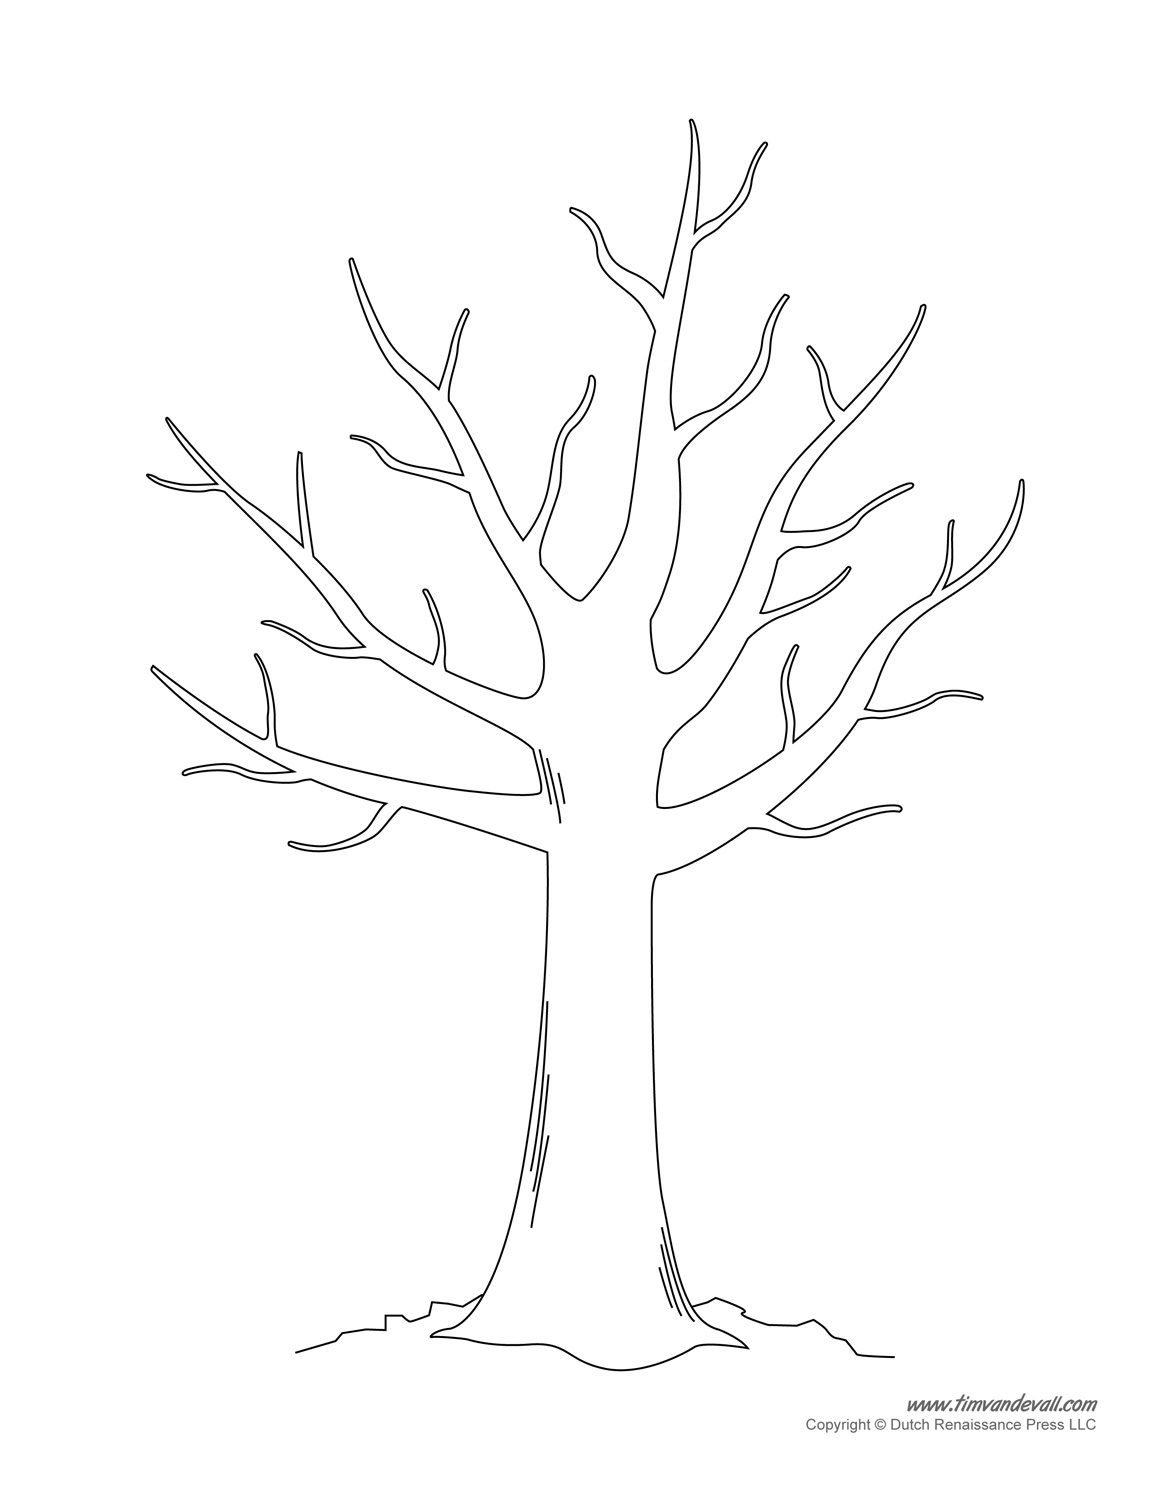 Free coloring pages of bare tree